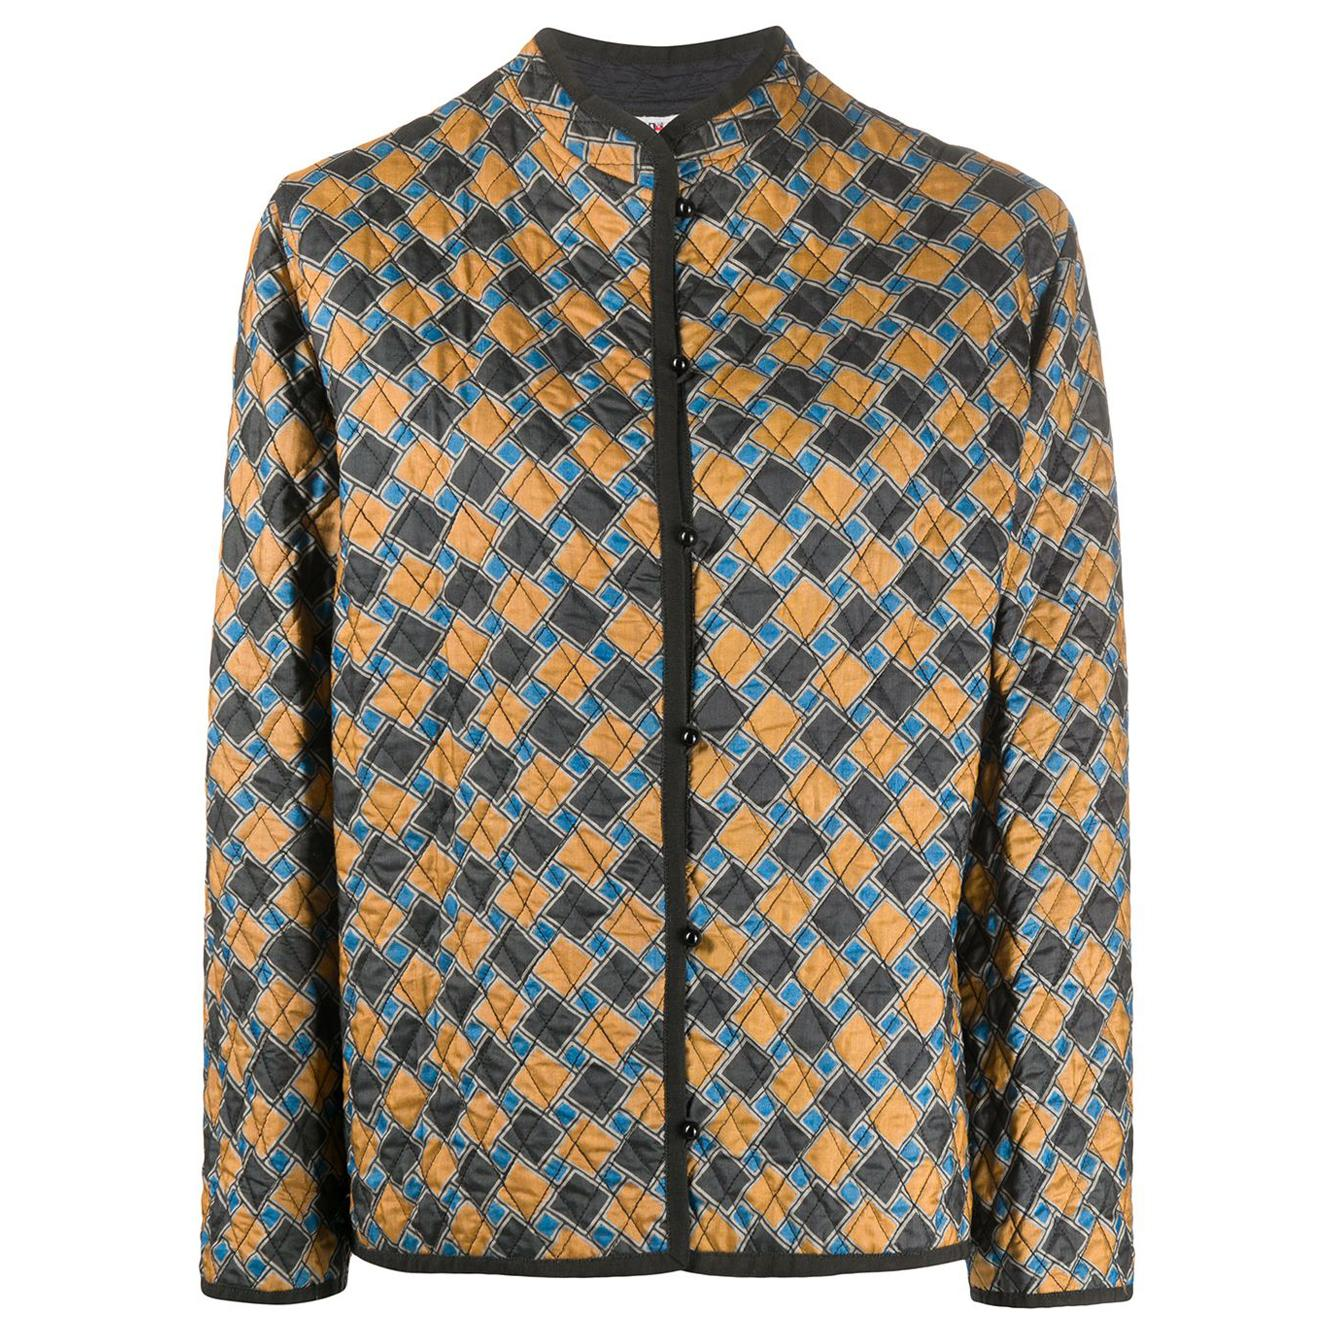 Iconic 1970s Yves Saint Laurent YSL Silk Quilted Jacket